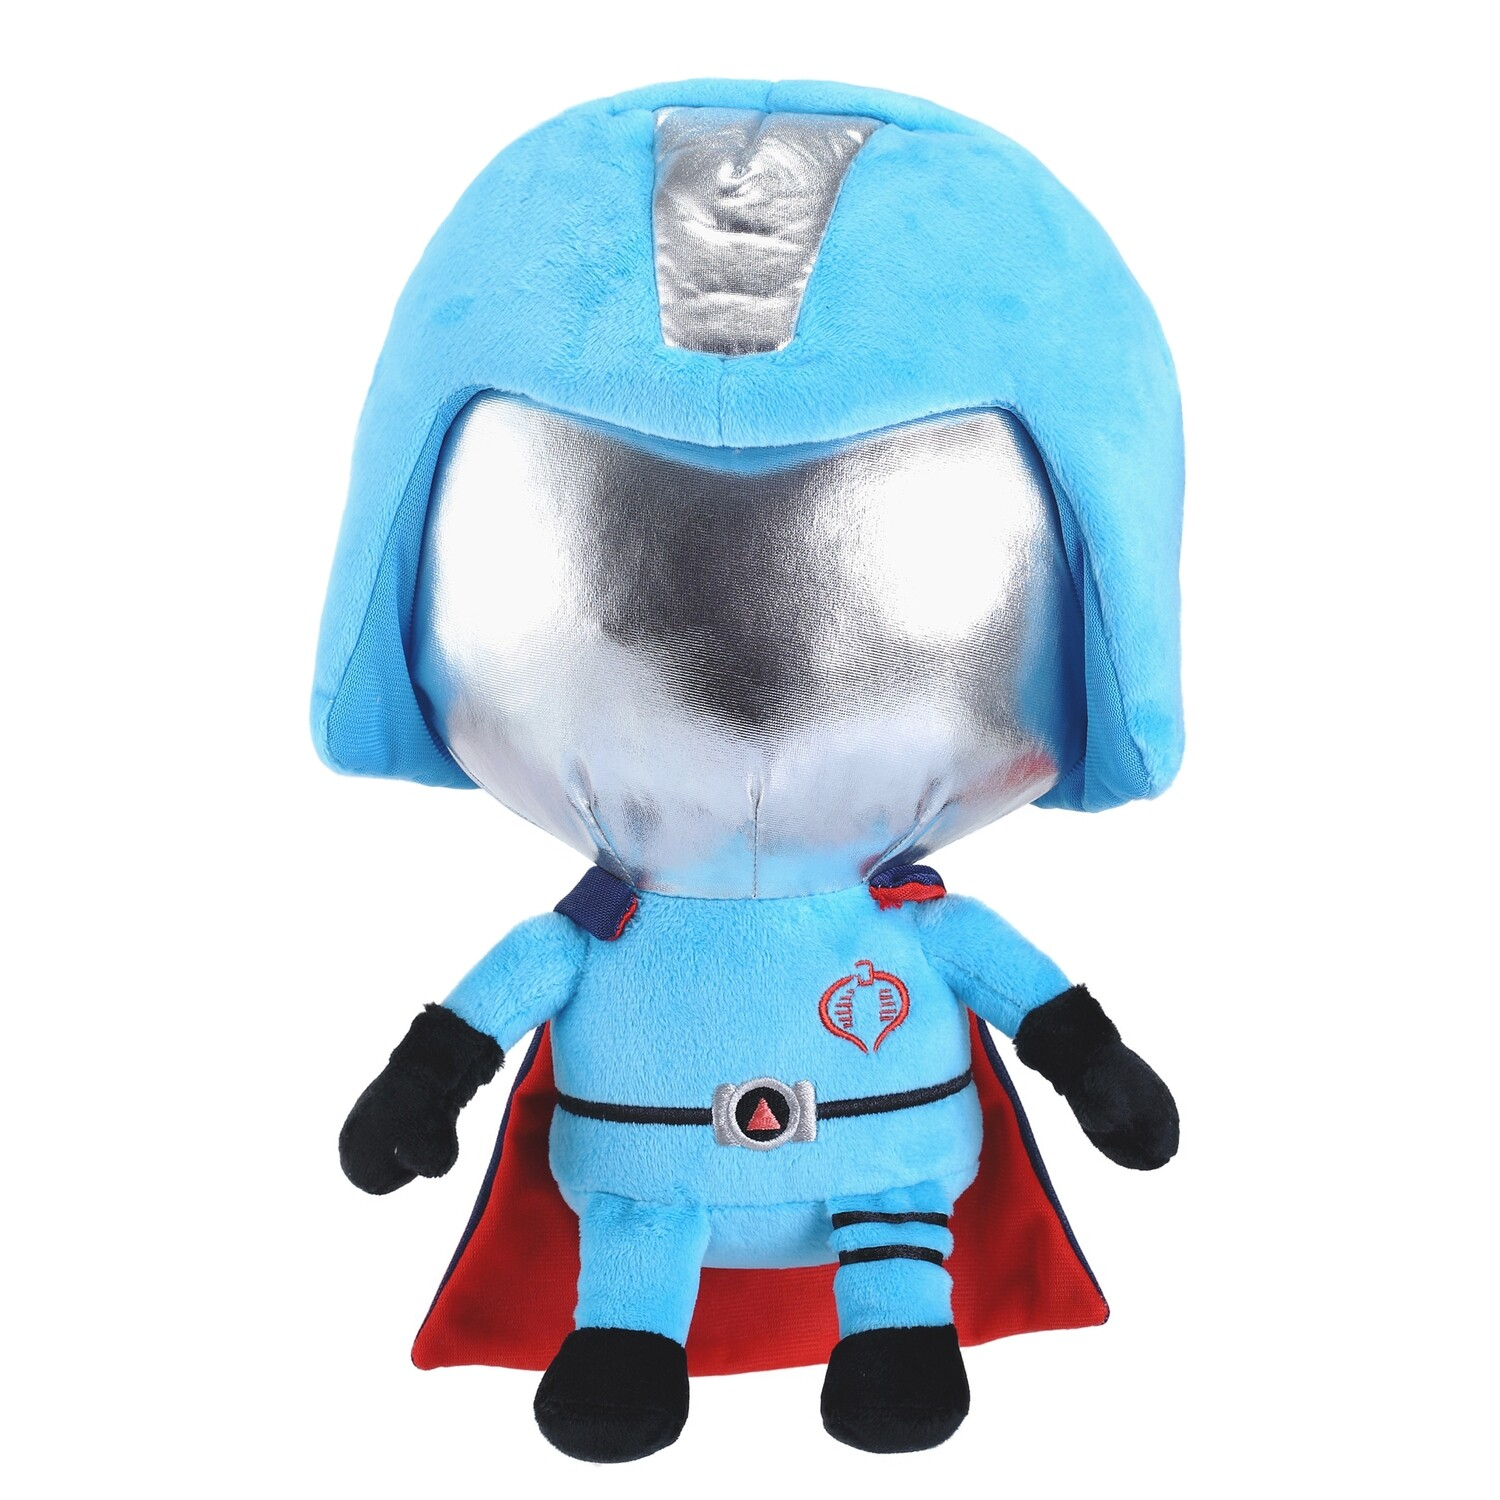 G.I. Joe Cobra Commander Plush